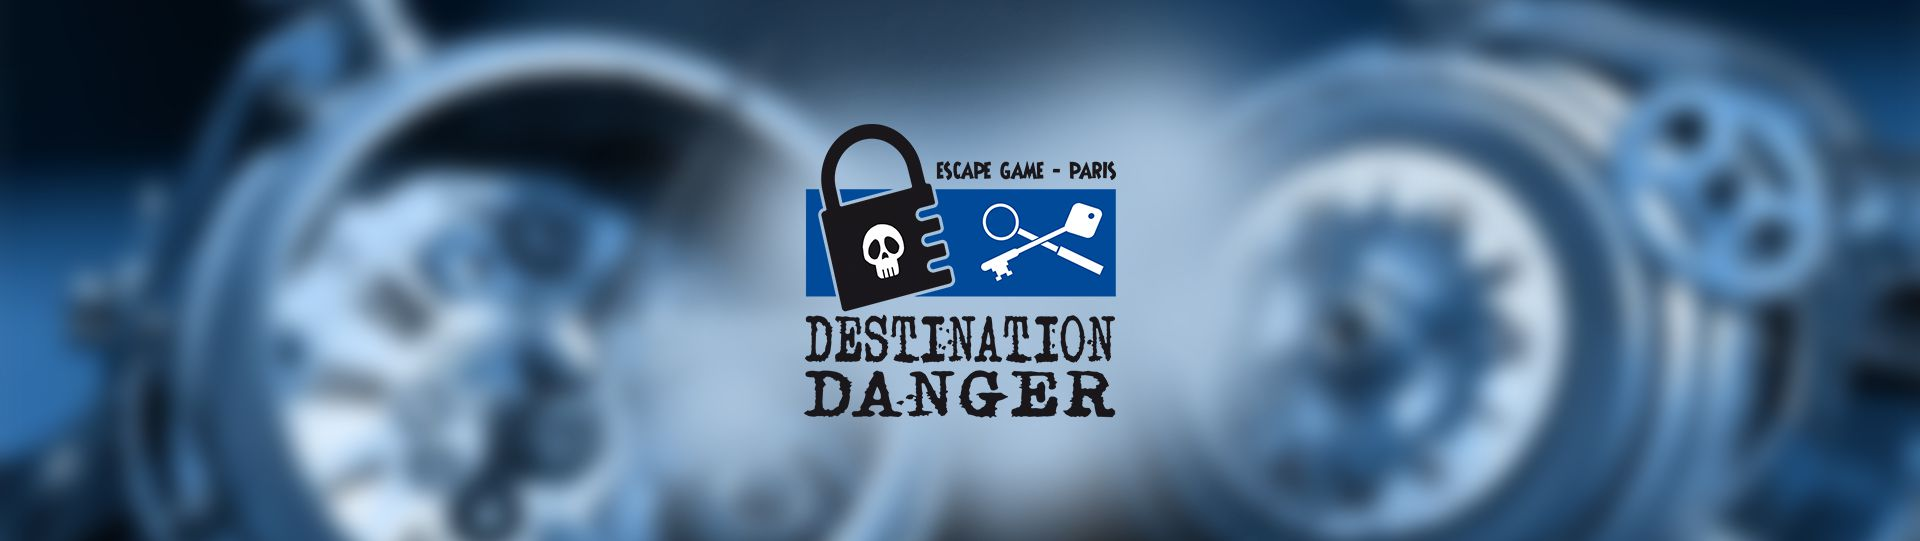 Escape game horreur à Paris - Destination Danger.jpg